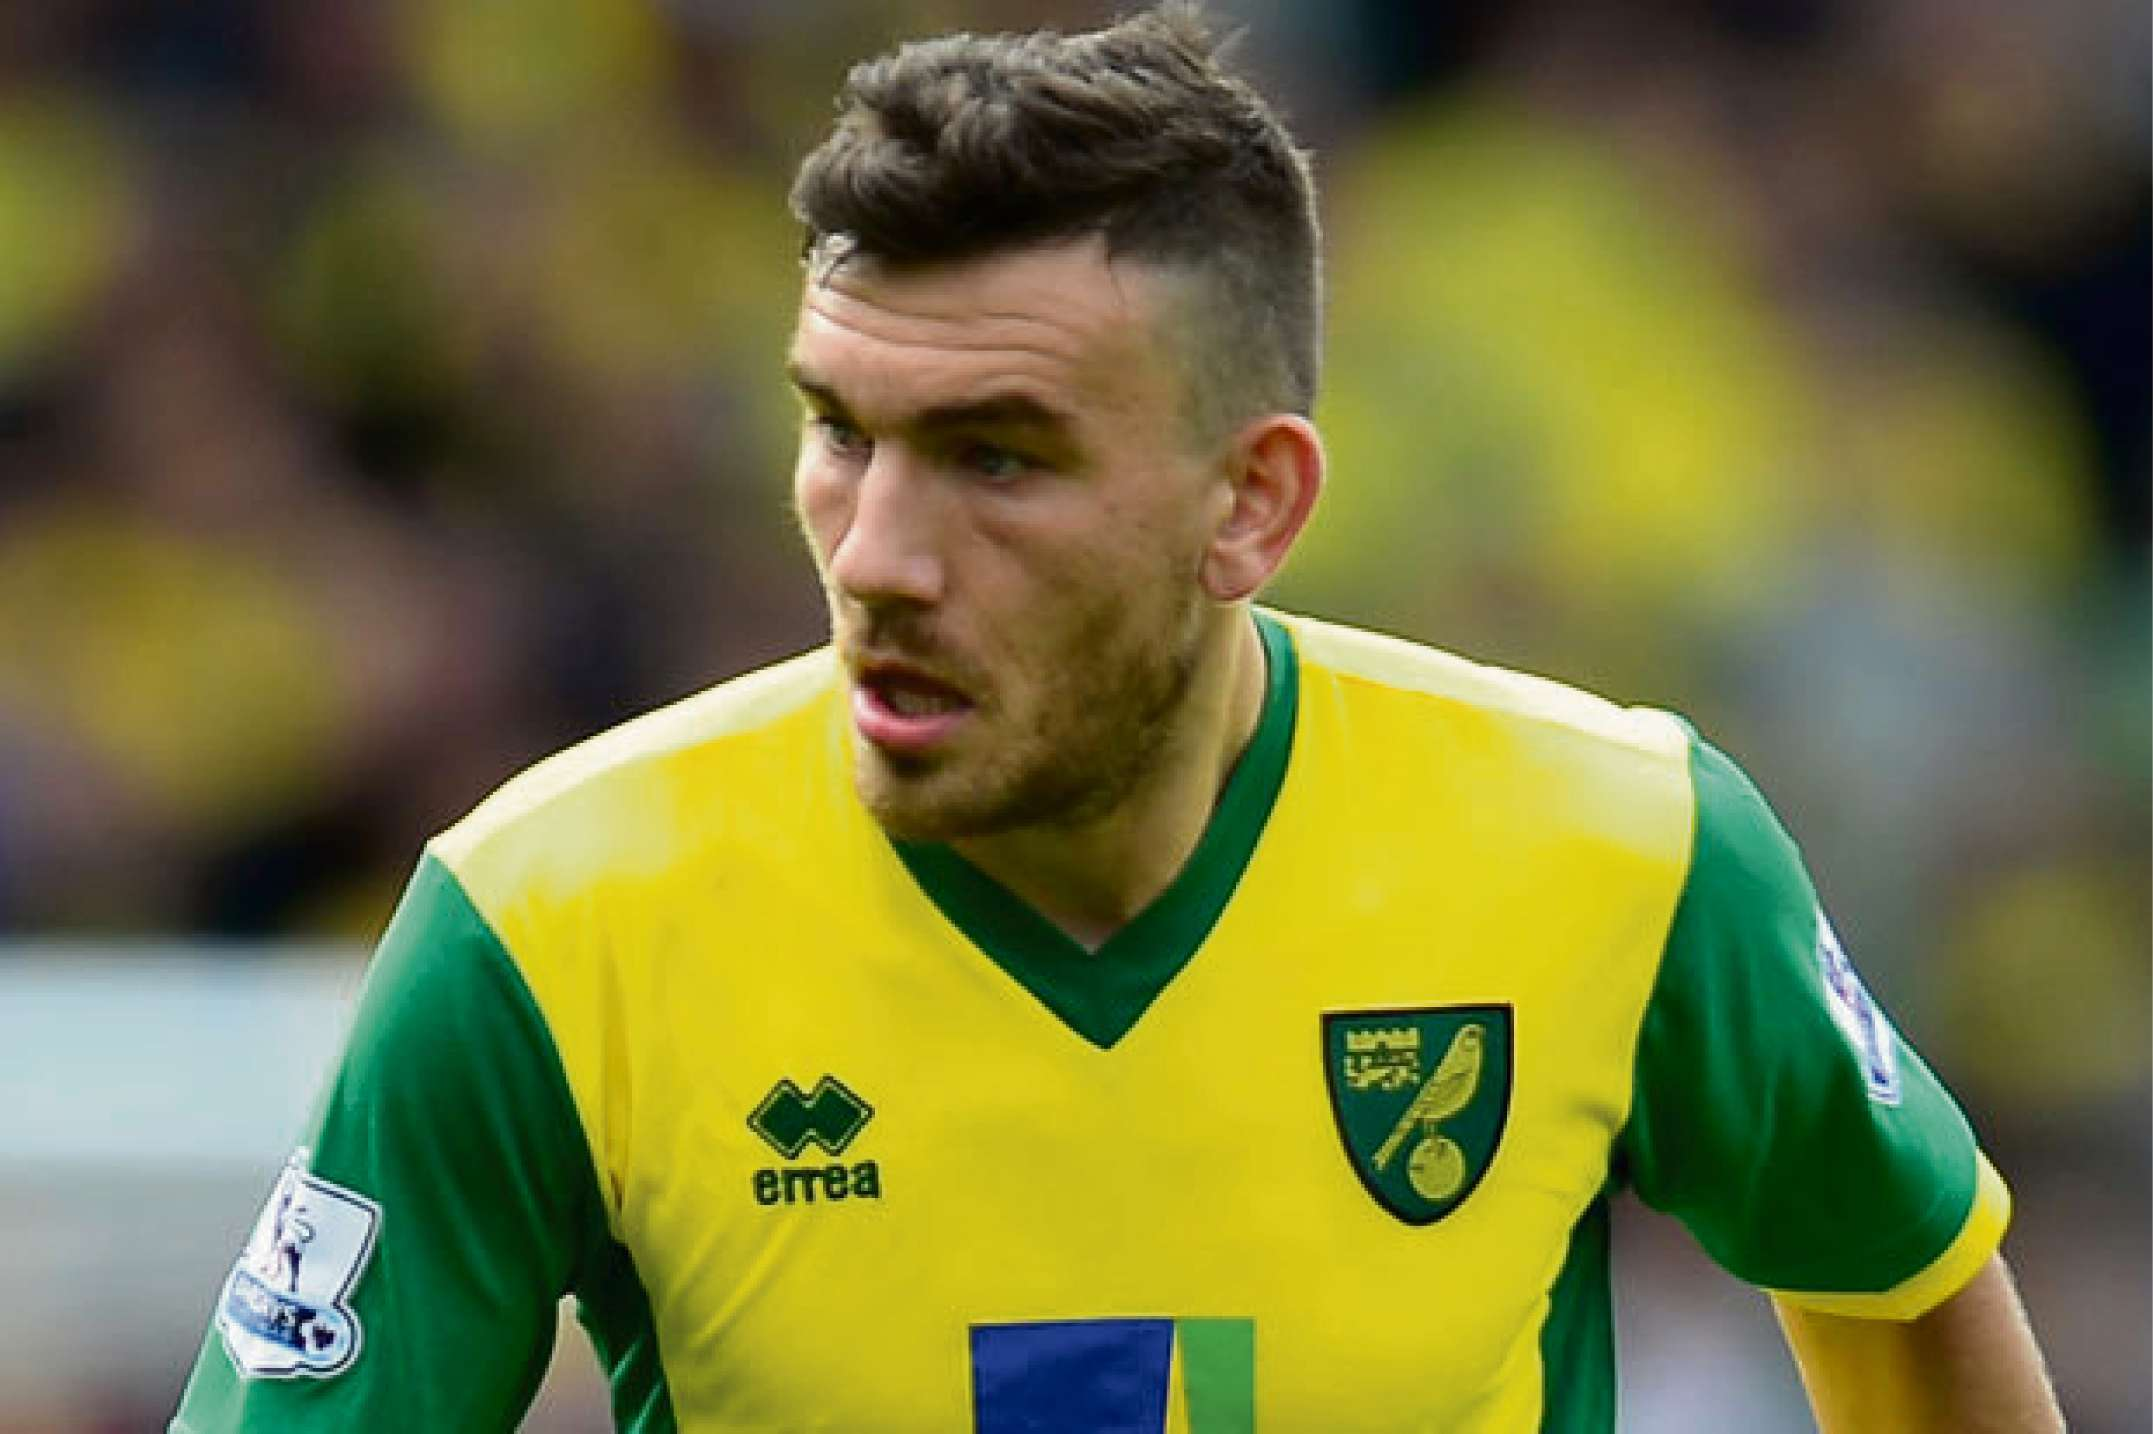 ROAD TO HULL: Sunderland target Robert Snodgrass has agreed a £7m move to Hull City, with the fee potentially rising to £8m on appearances